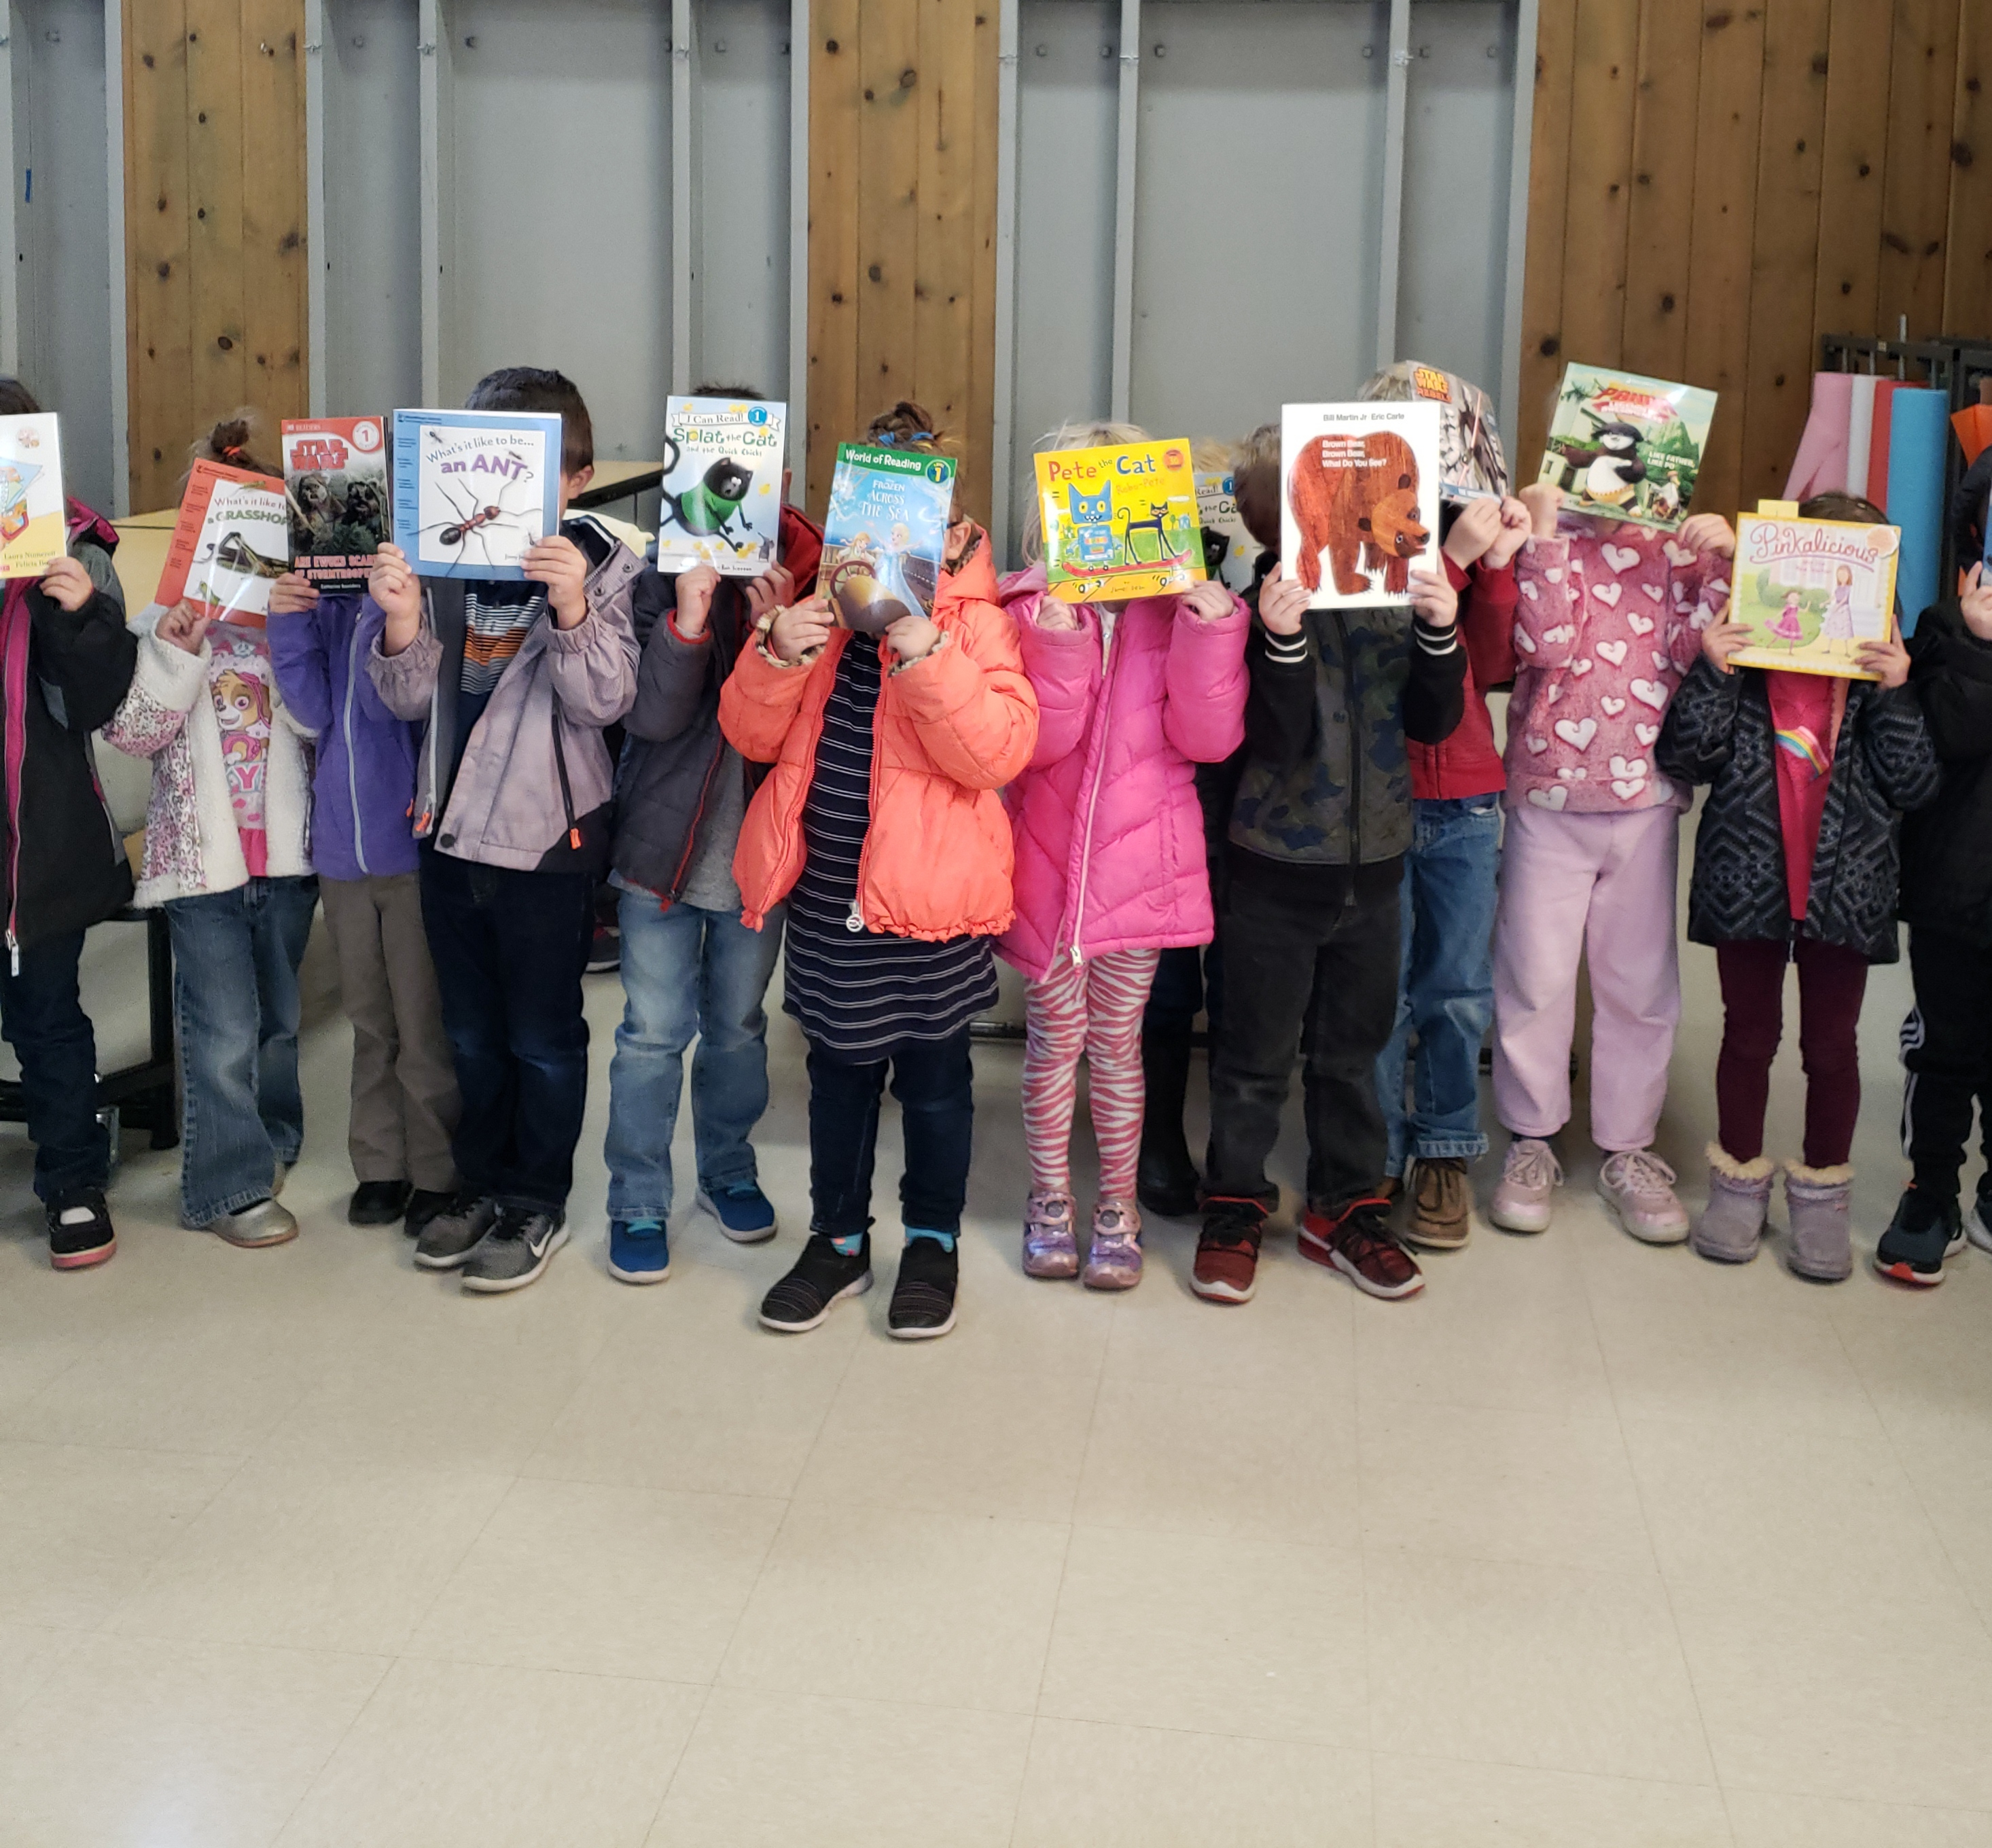 A line of children holding books over their faces